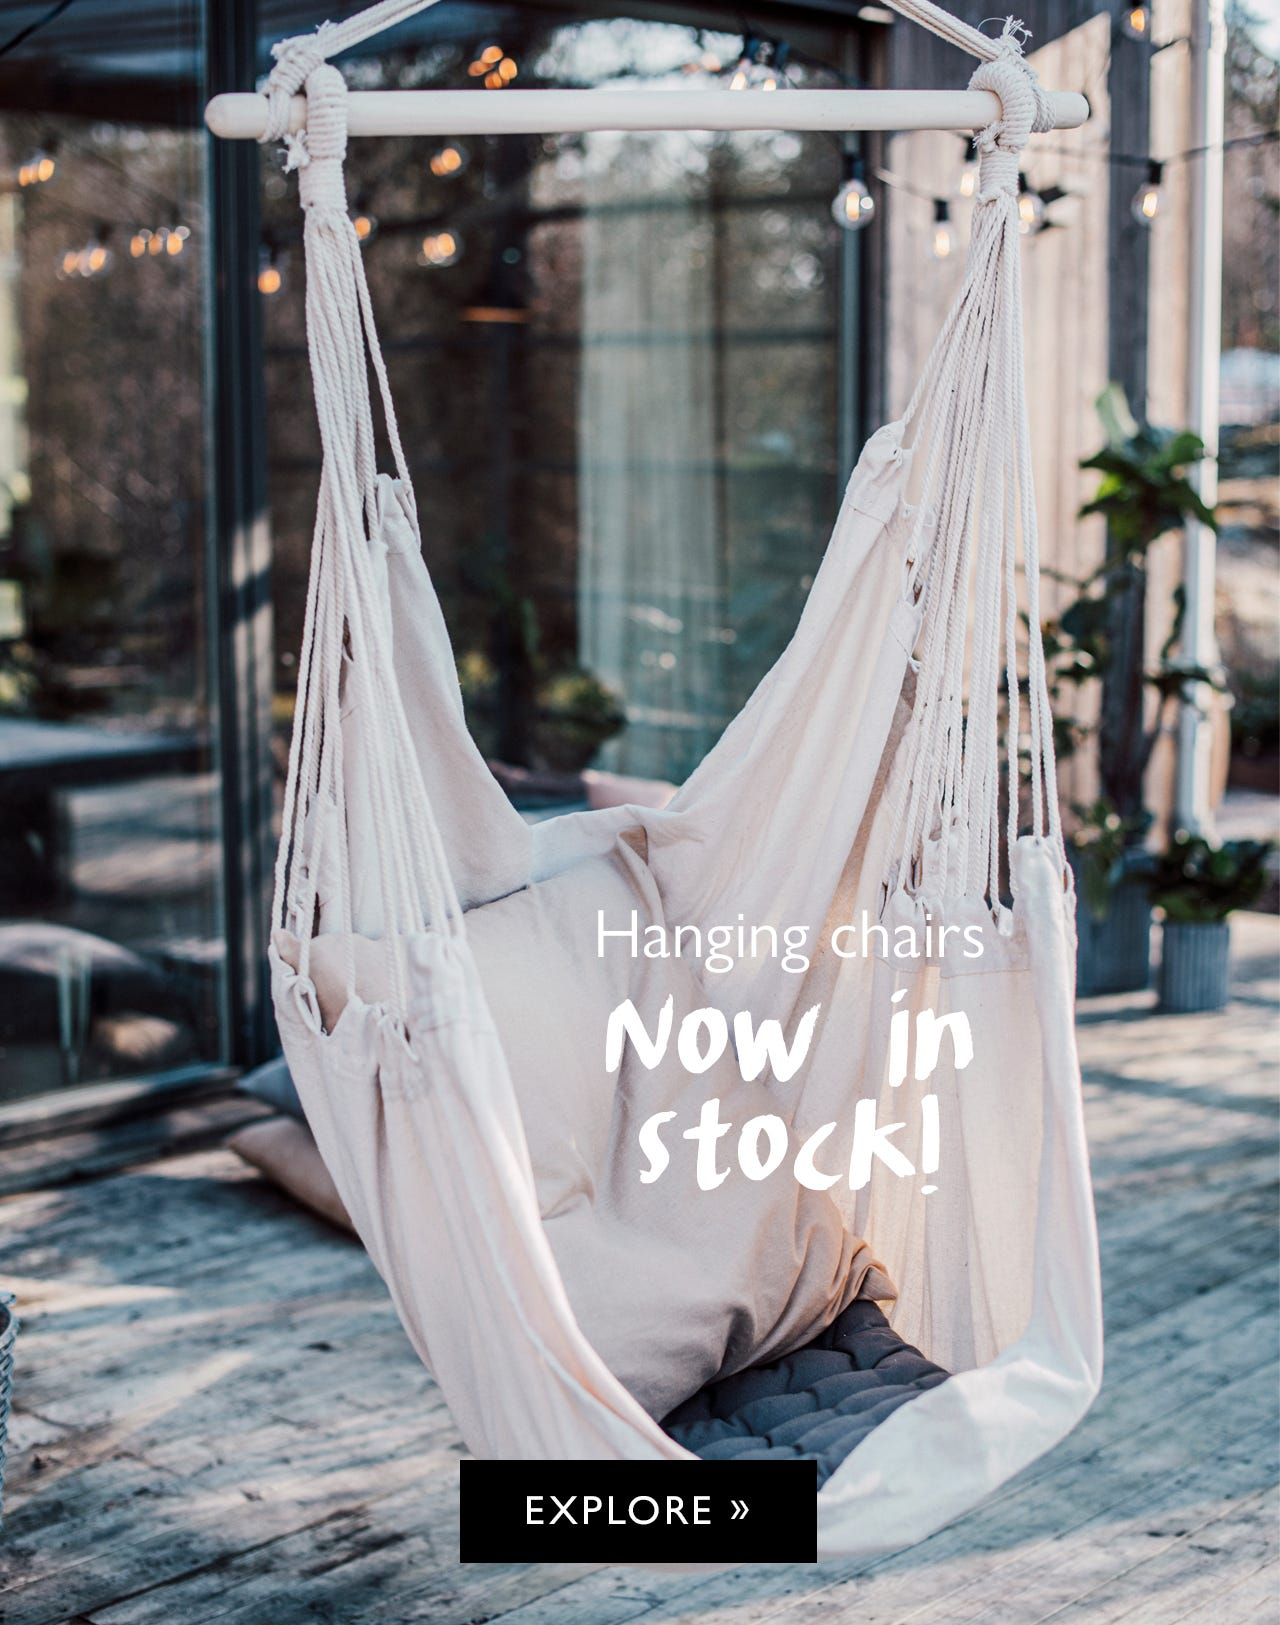 New hanging chairs, now in stock!